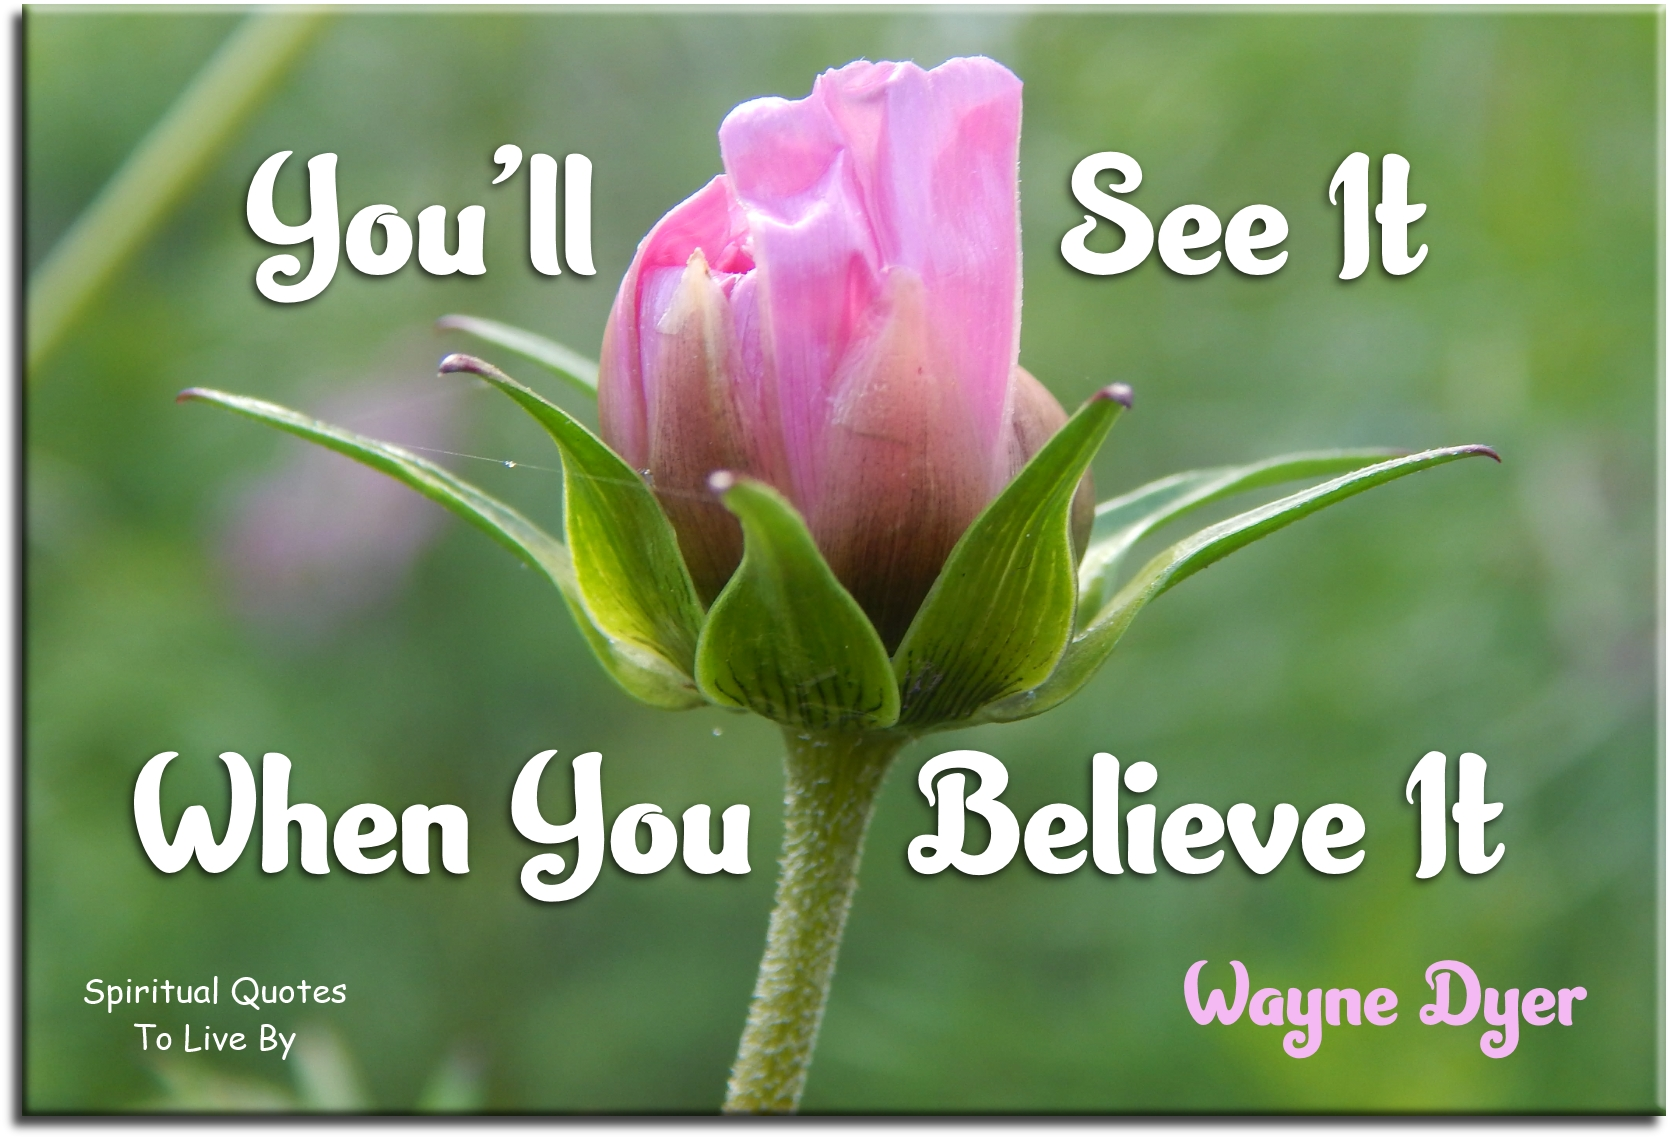 Wayne Dyer quote: You'll see it when you believe it. Spiritual Quotes To Live By